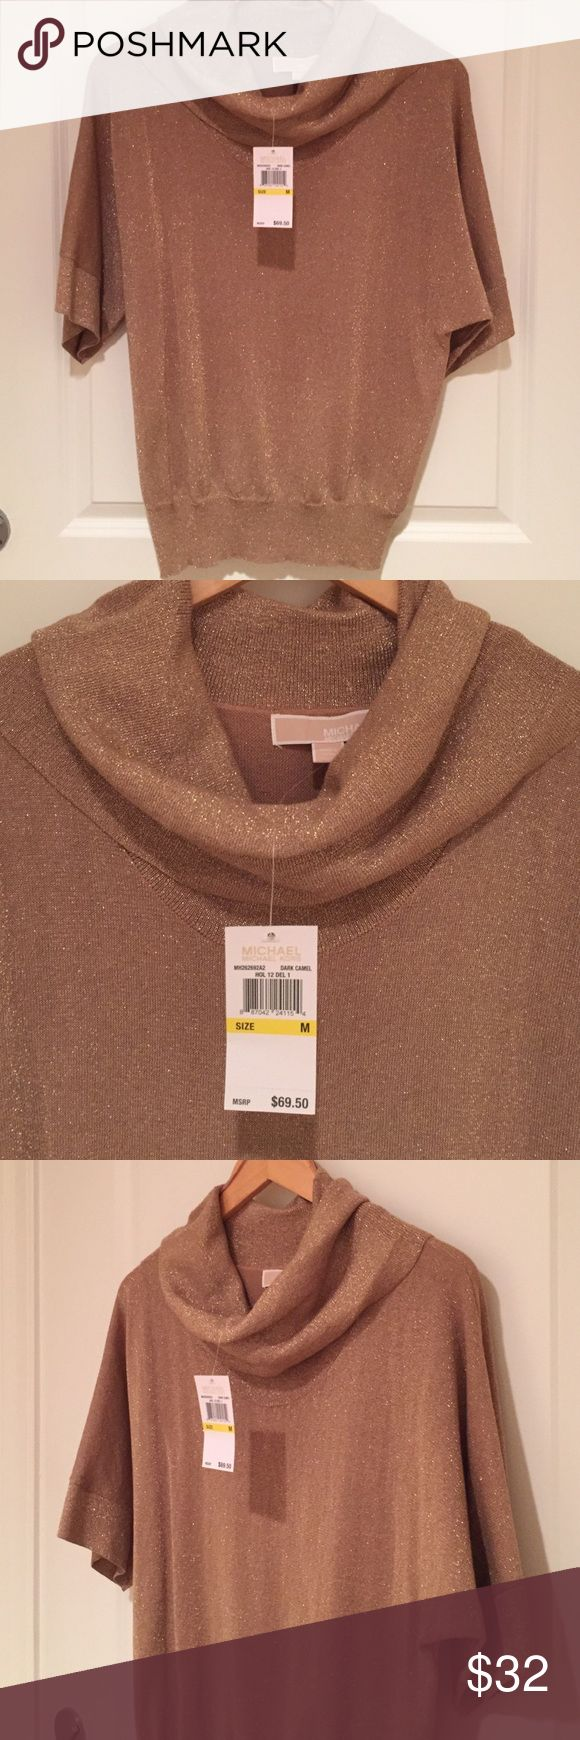 Michael Kors Dark Camel Top w/ Gold Sparkles. NWT! Michael Kors dark camel top with gold sparkles. Cowl neck and banded waist. NWT! MICHAEL Michael Kors Tops